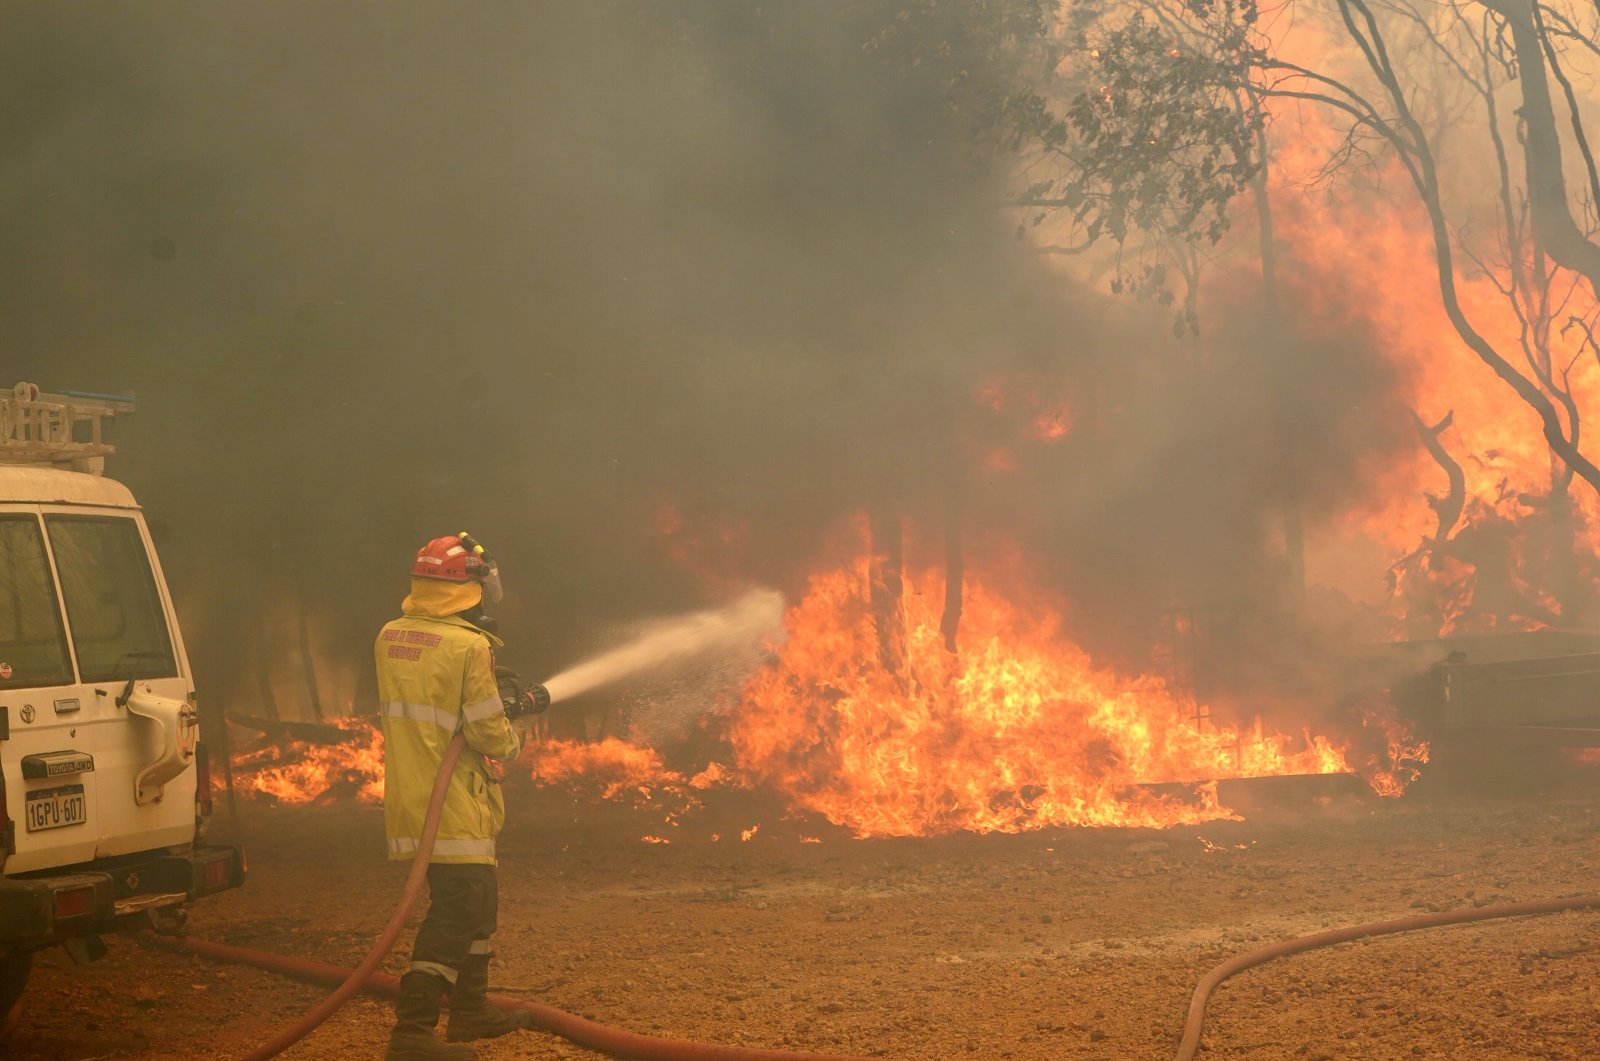 In this photo provided by the Department of Fire and Emergency Services, a firefighter attends to a fire near Wooroloo, northeast of Perth, Australia, Feb. 2, 2021. (AP Photo)